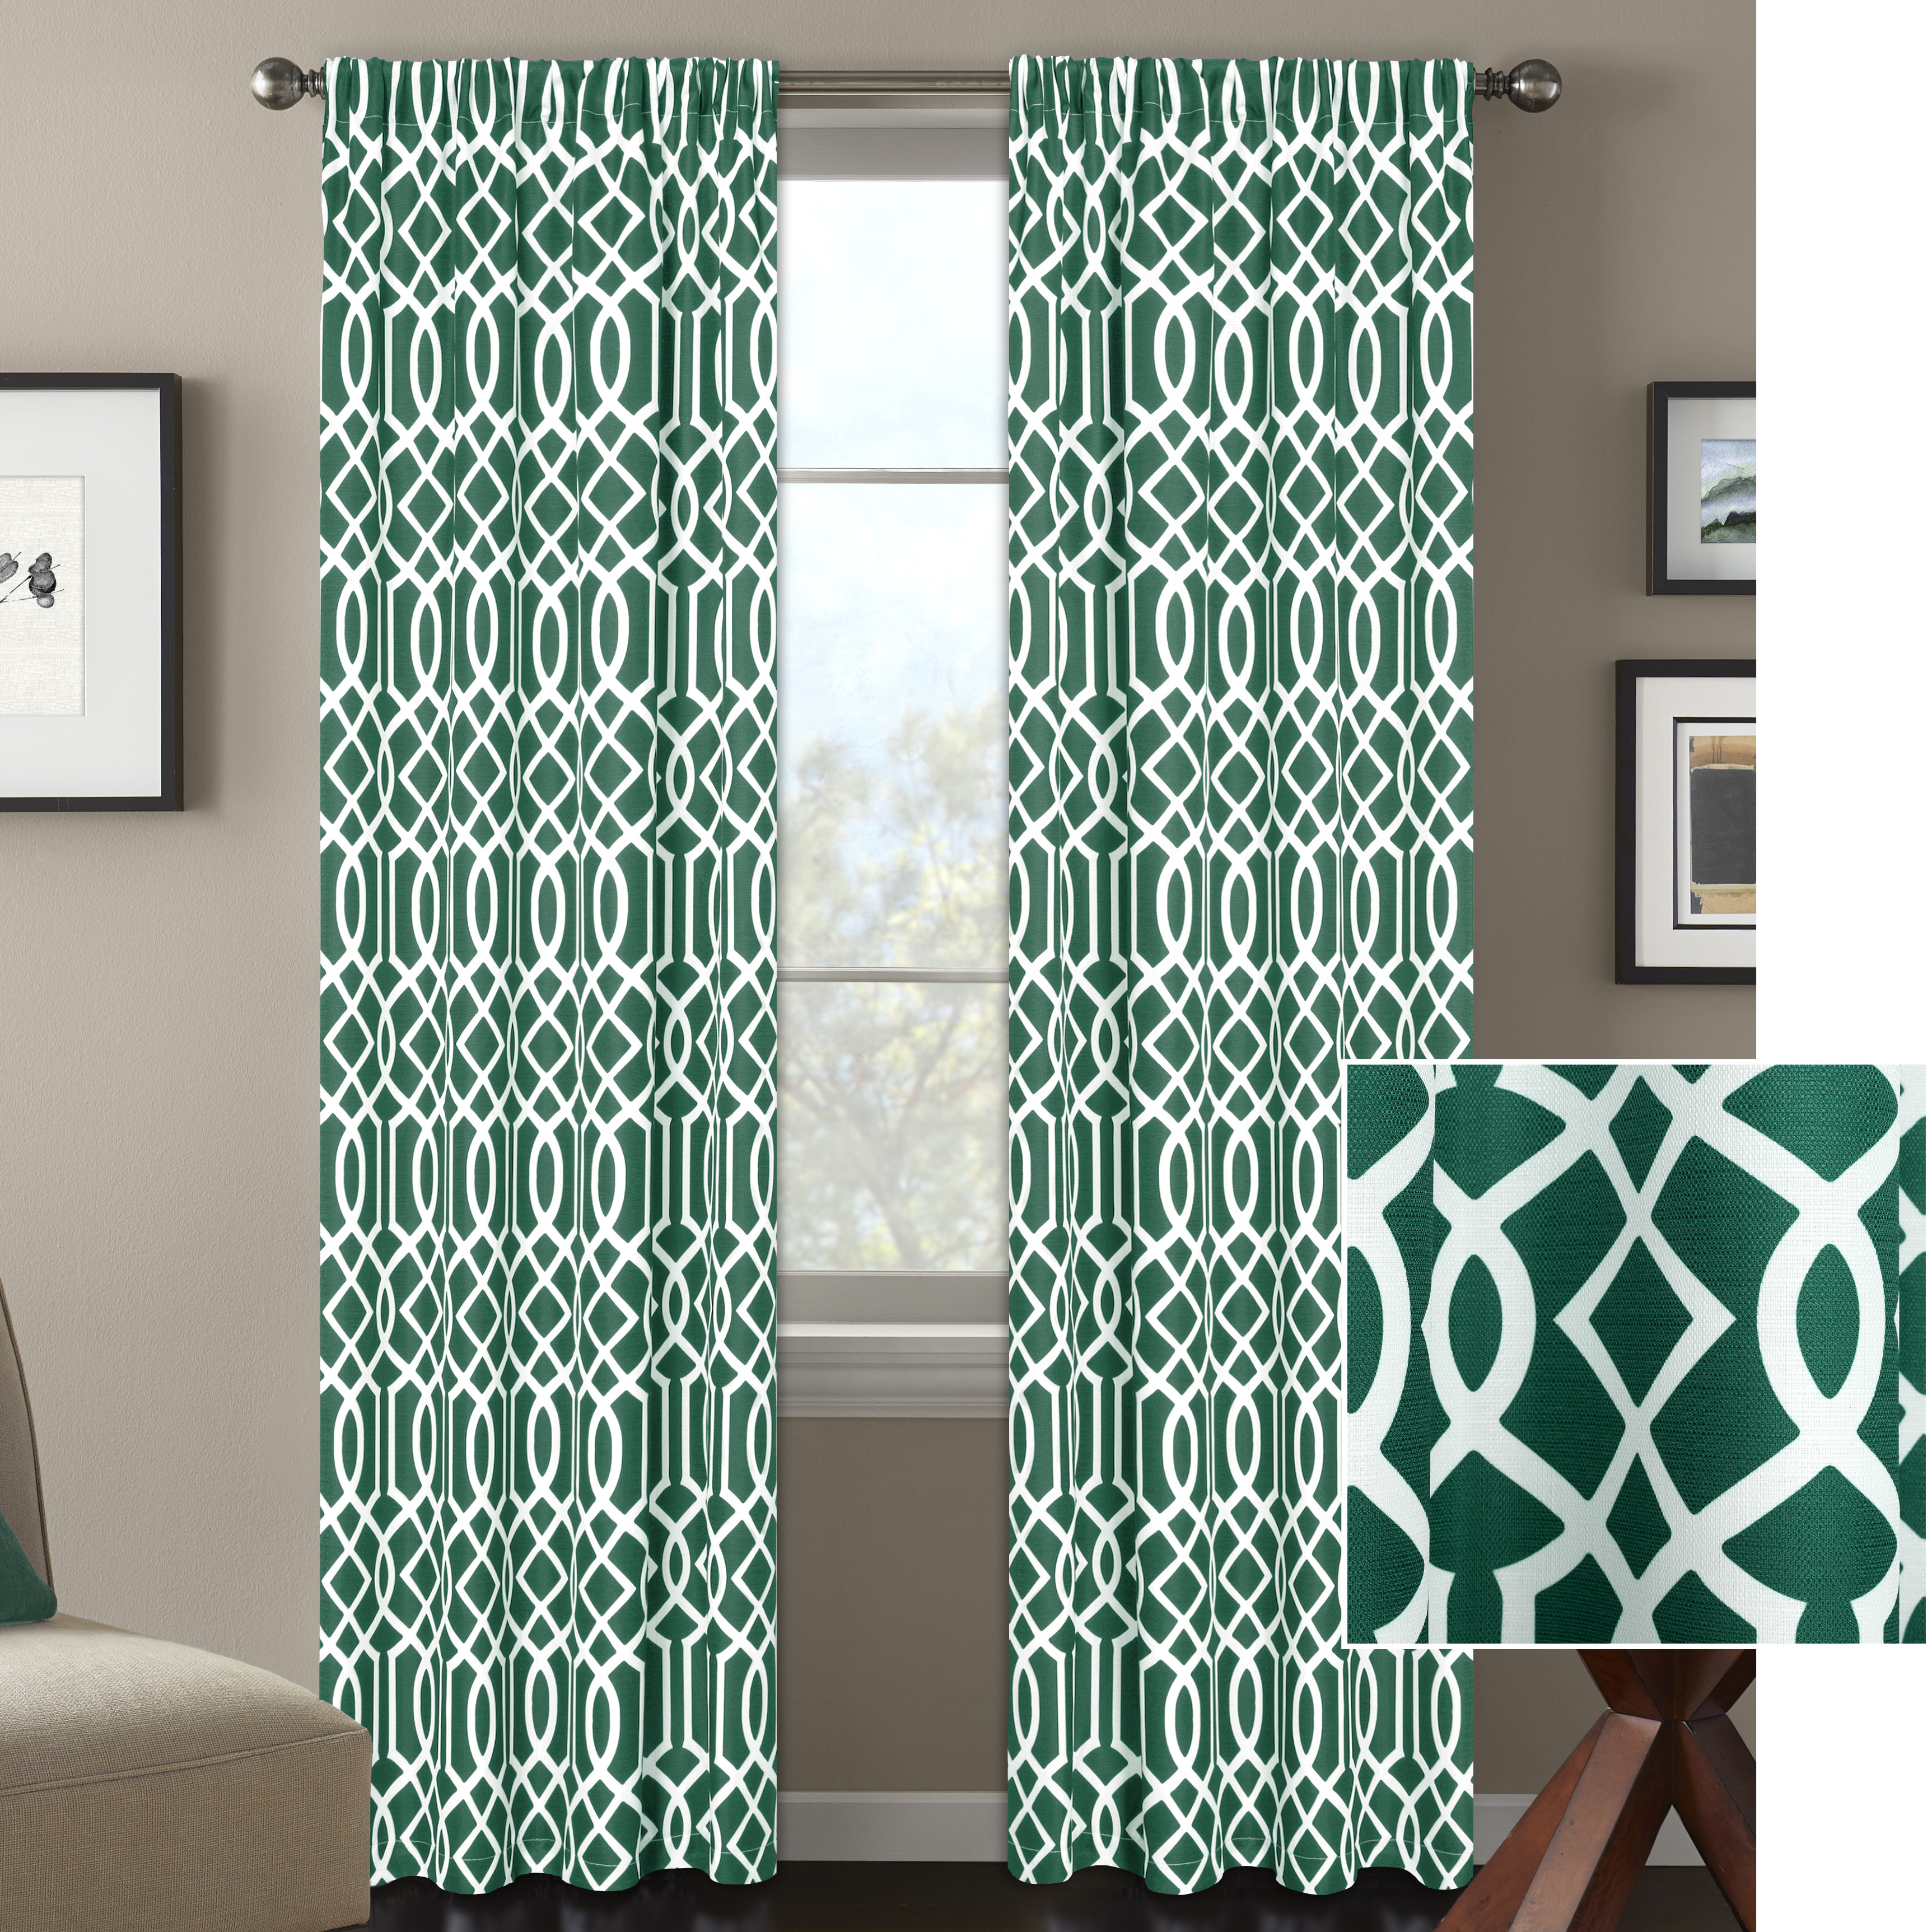 Better Home and Gardens Ironwork Window Curtain by Colordrift LLC